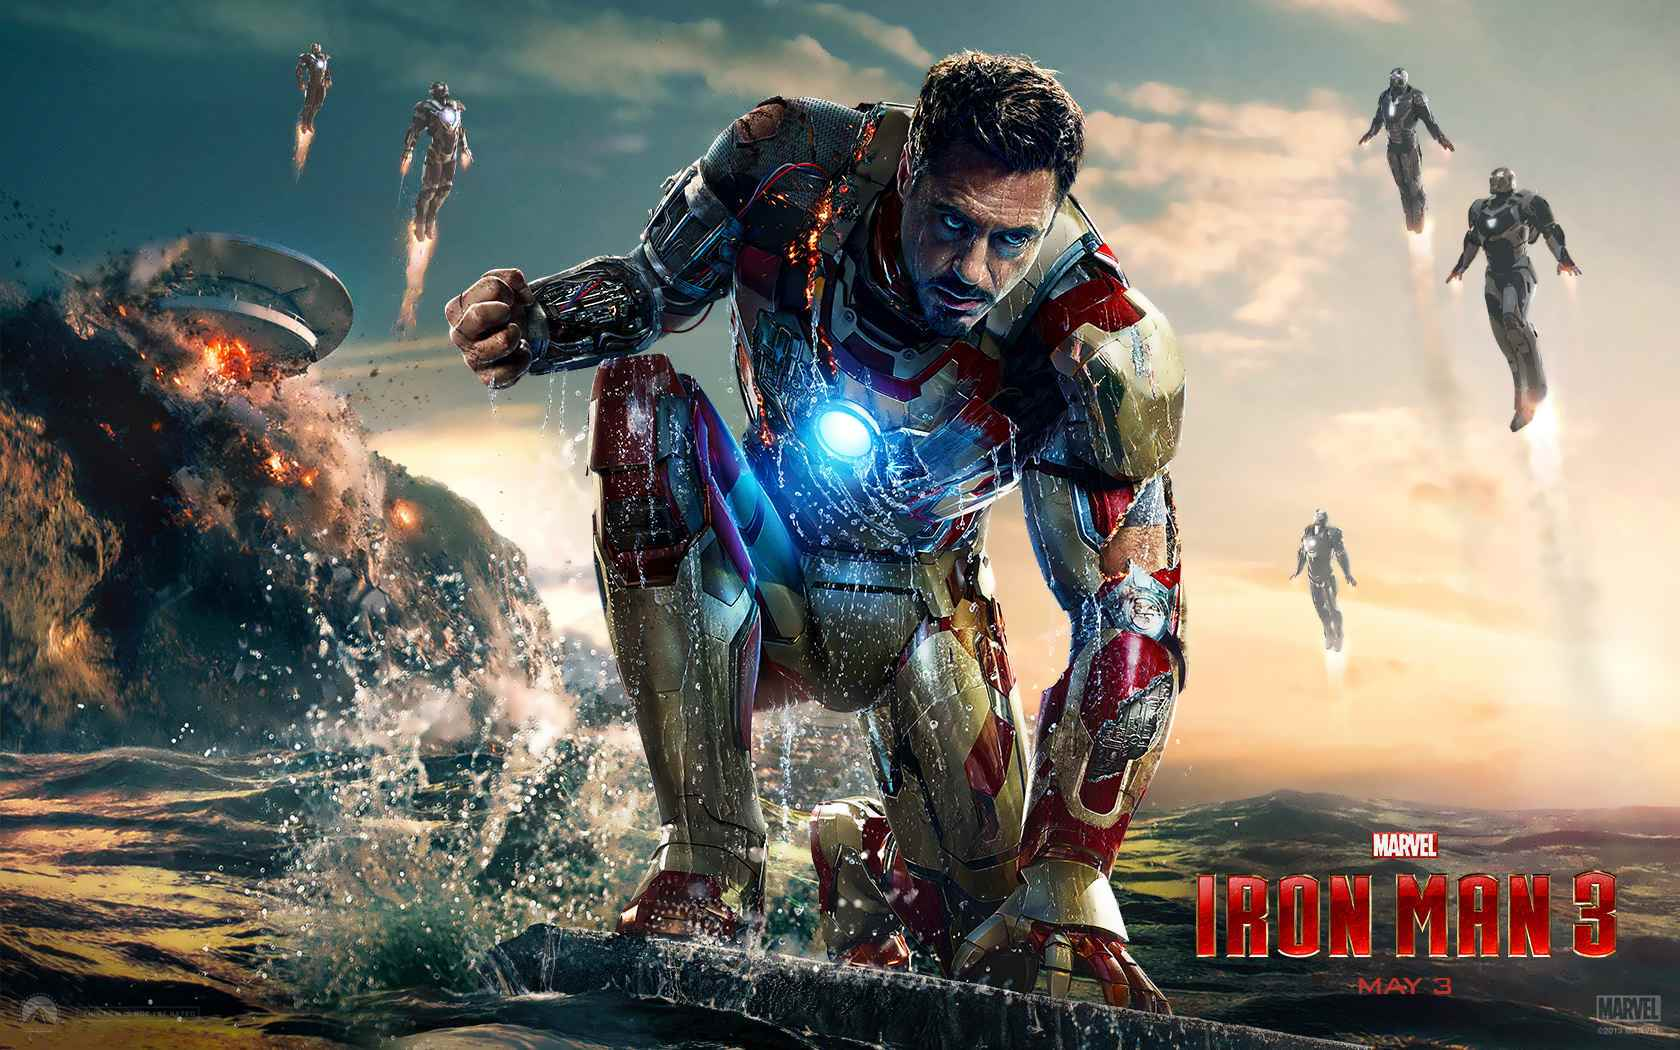 Iron_man_3_2013_best_wallpaper